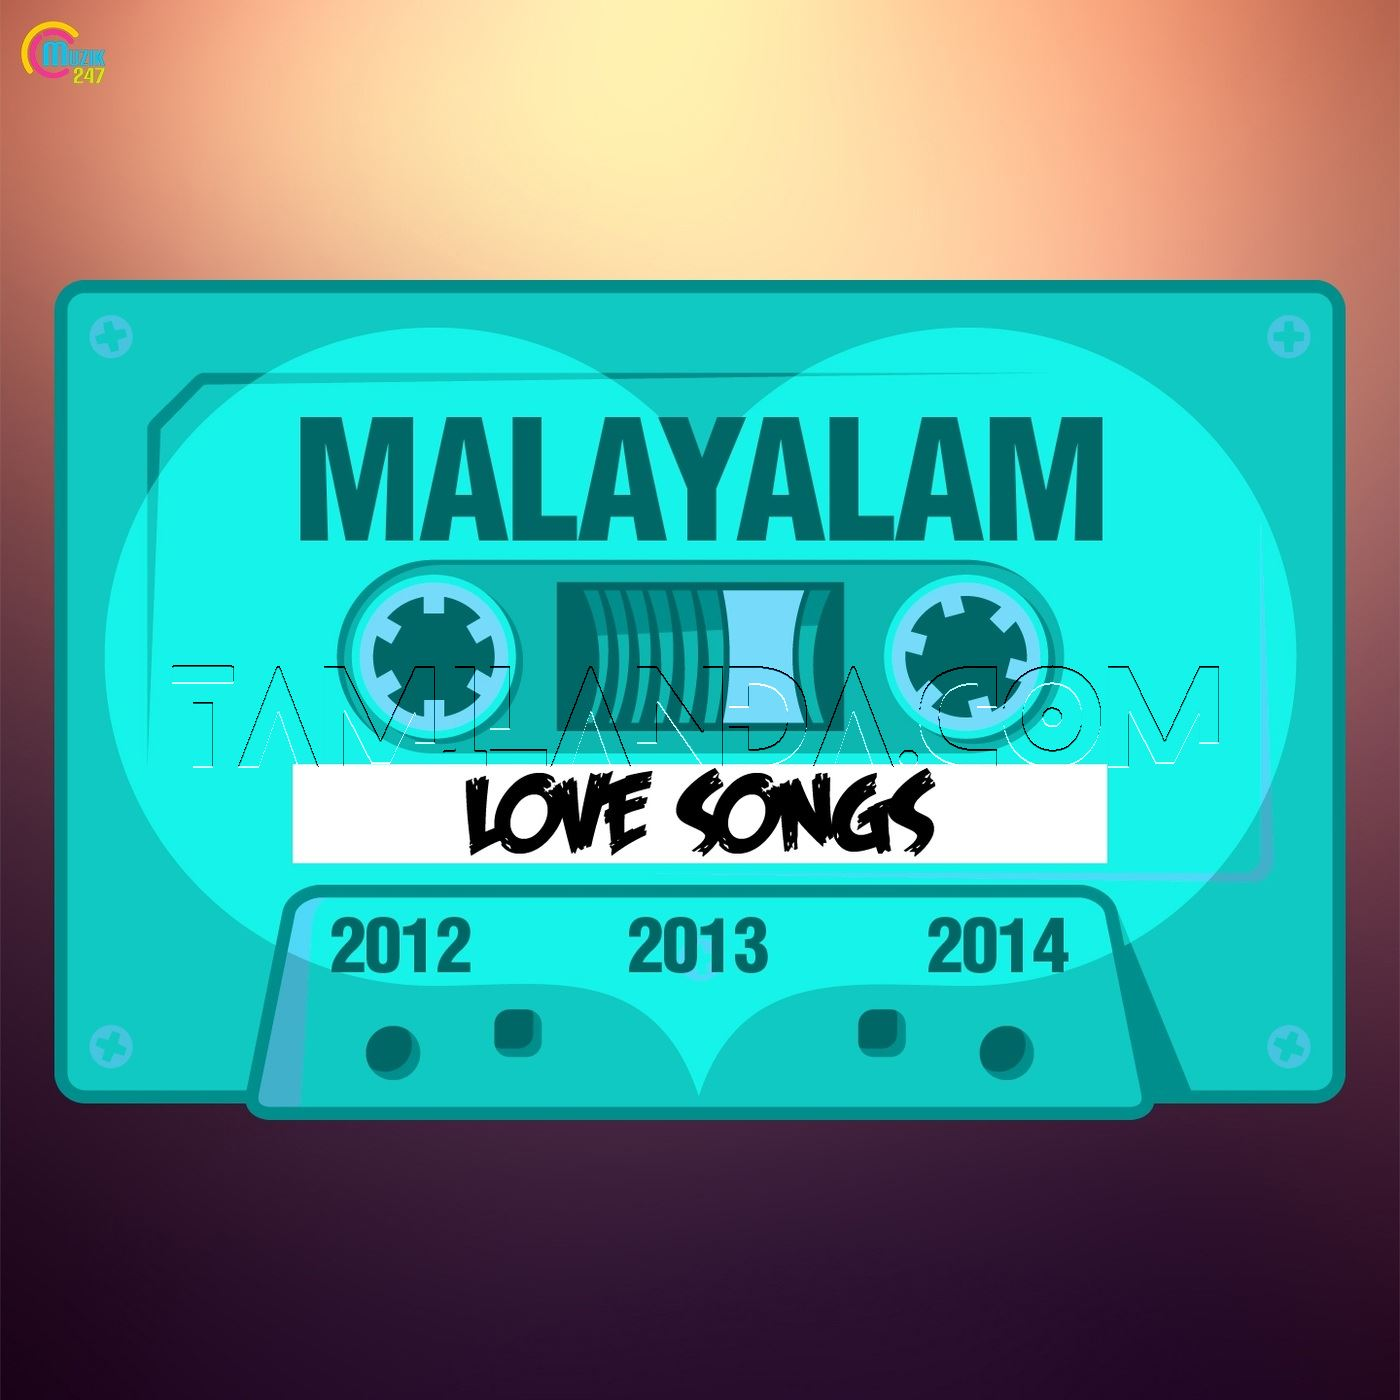 Malayalam Love Songs 2012, 2013 and 2014 FLAC Songs